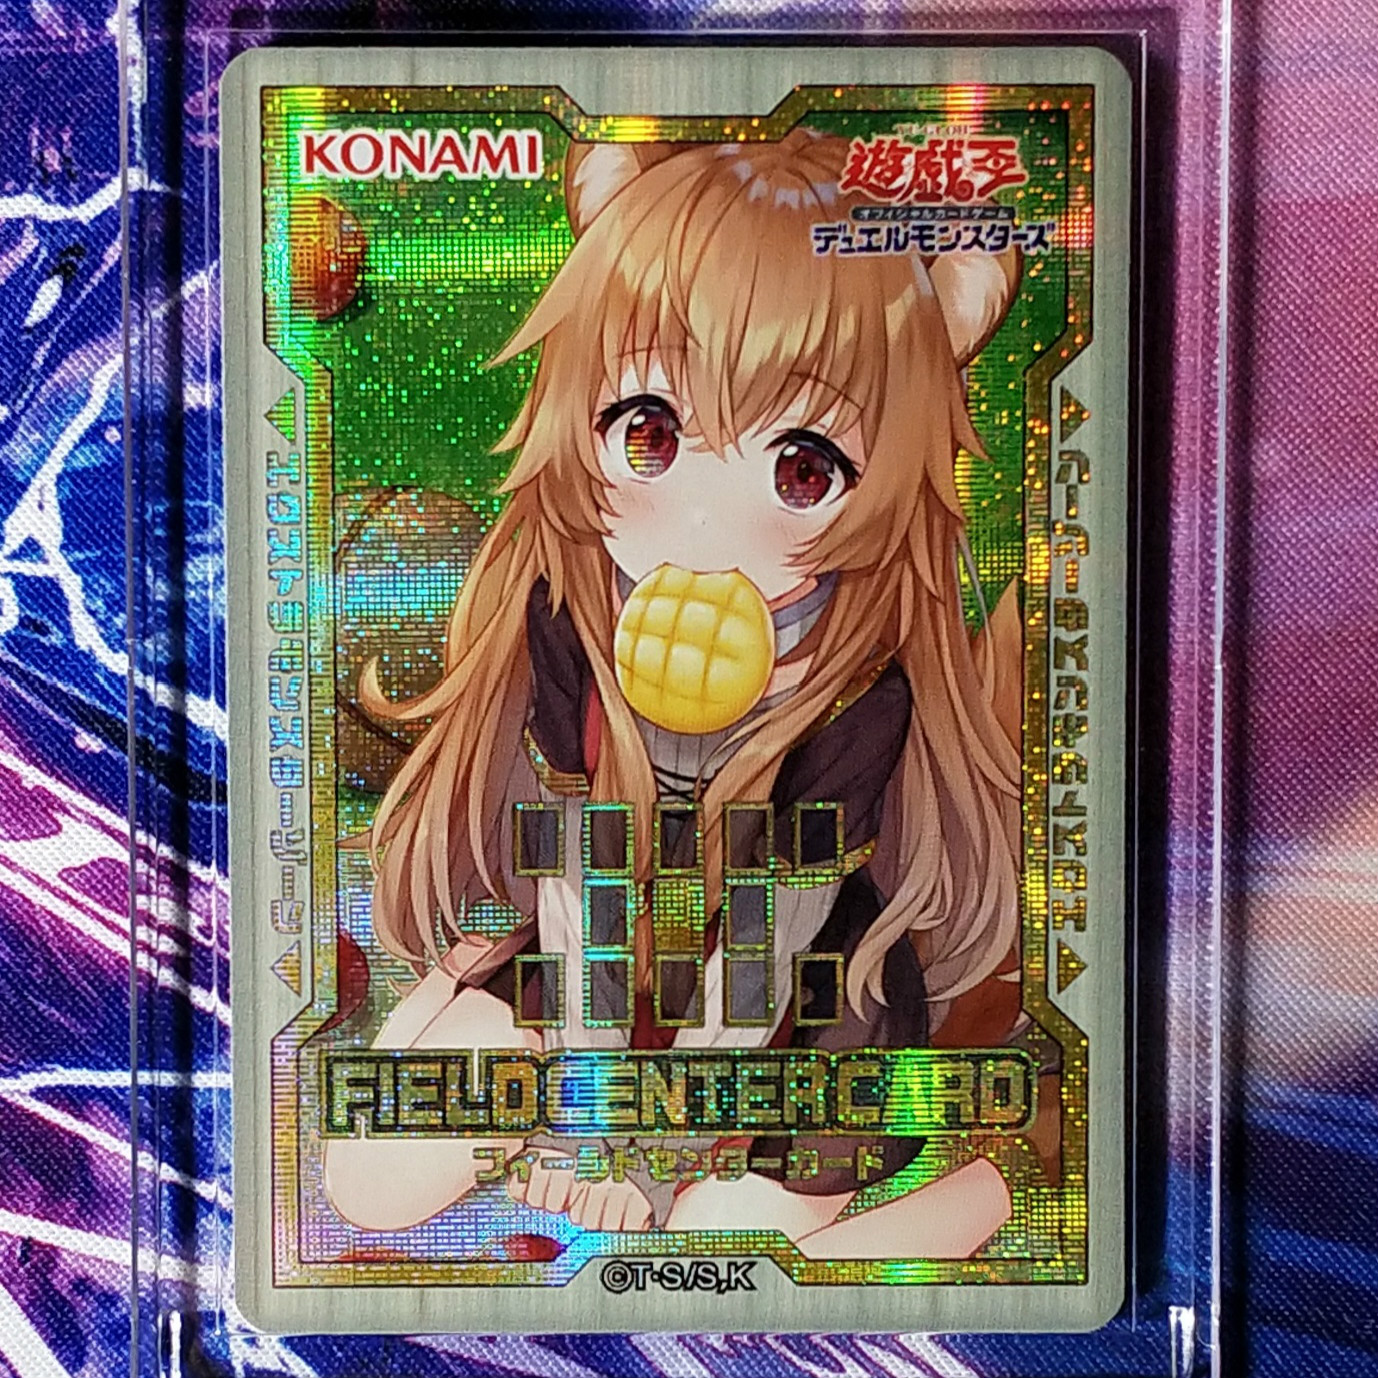 Yu Gi Oh Raphtalia DIY Colorful Toys Hobbies Hobby Collectibles Game Collection Anime Cards